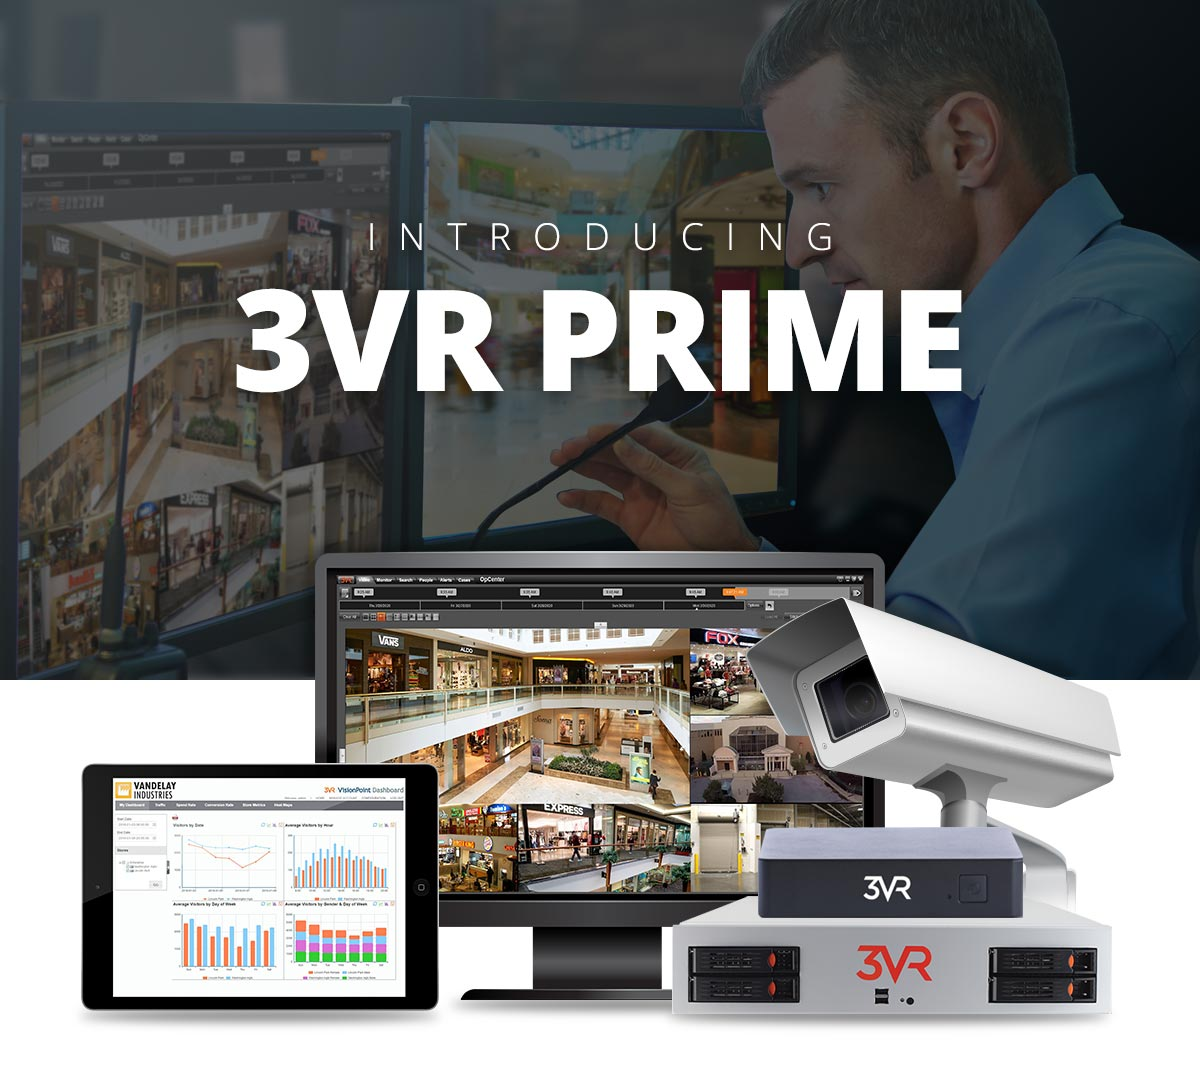 Introducing 3VR Prime